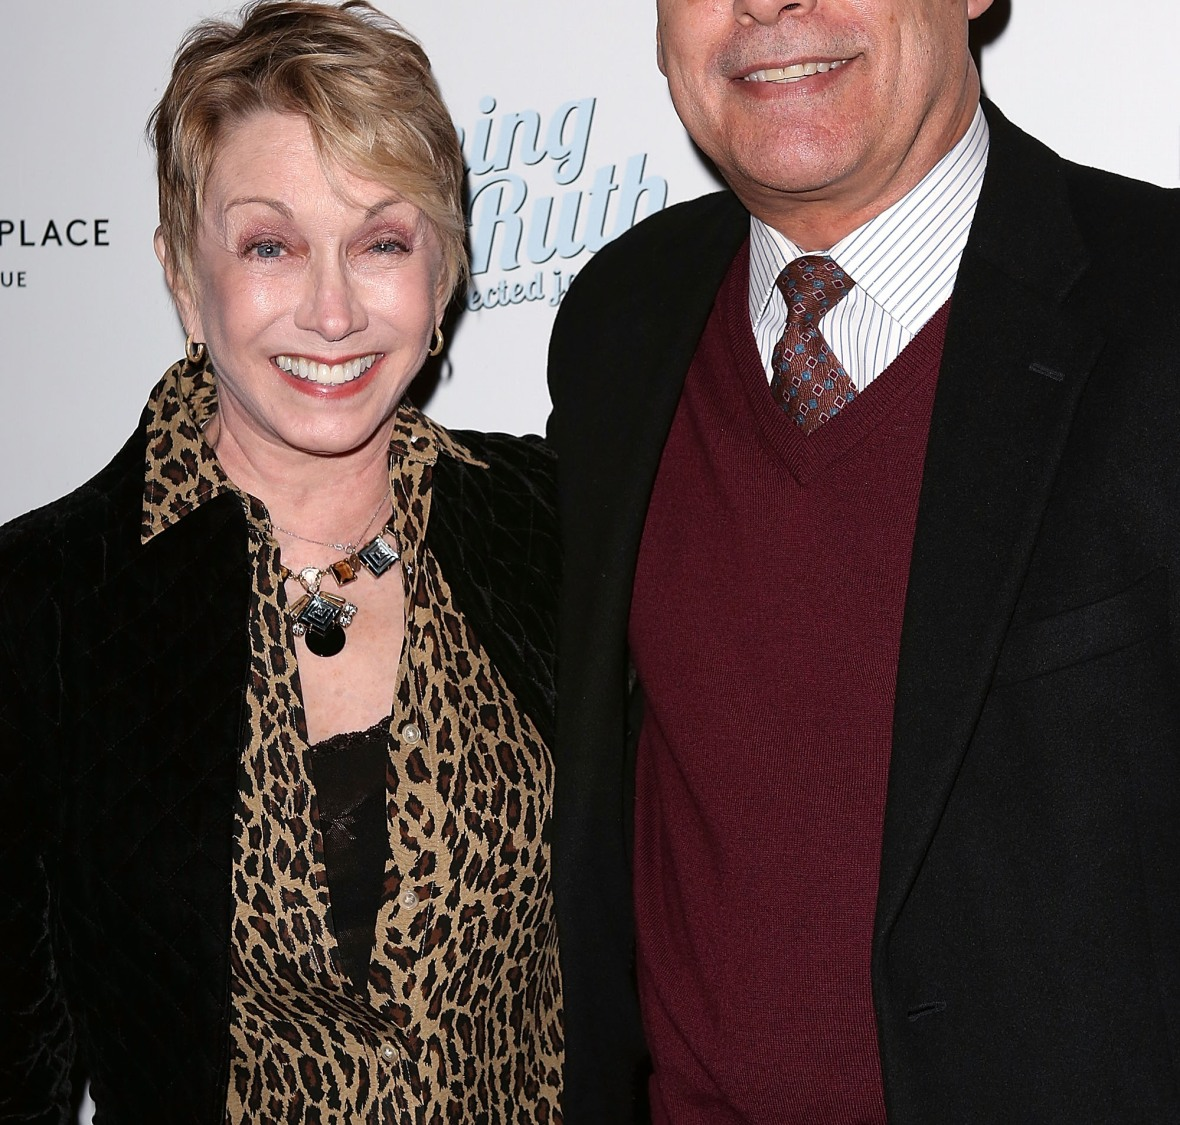 sandy and her husband, don correia. (photo credit: getty images)